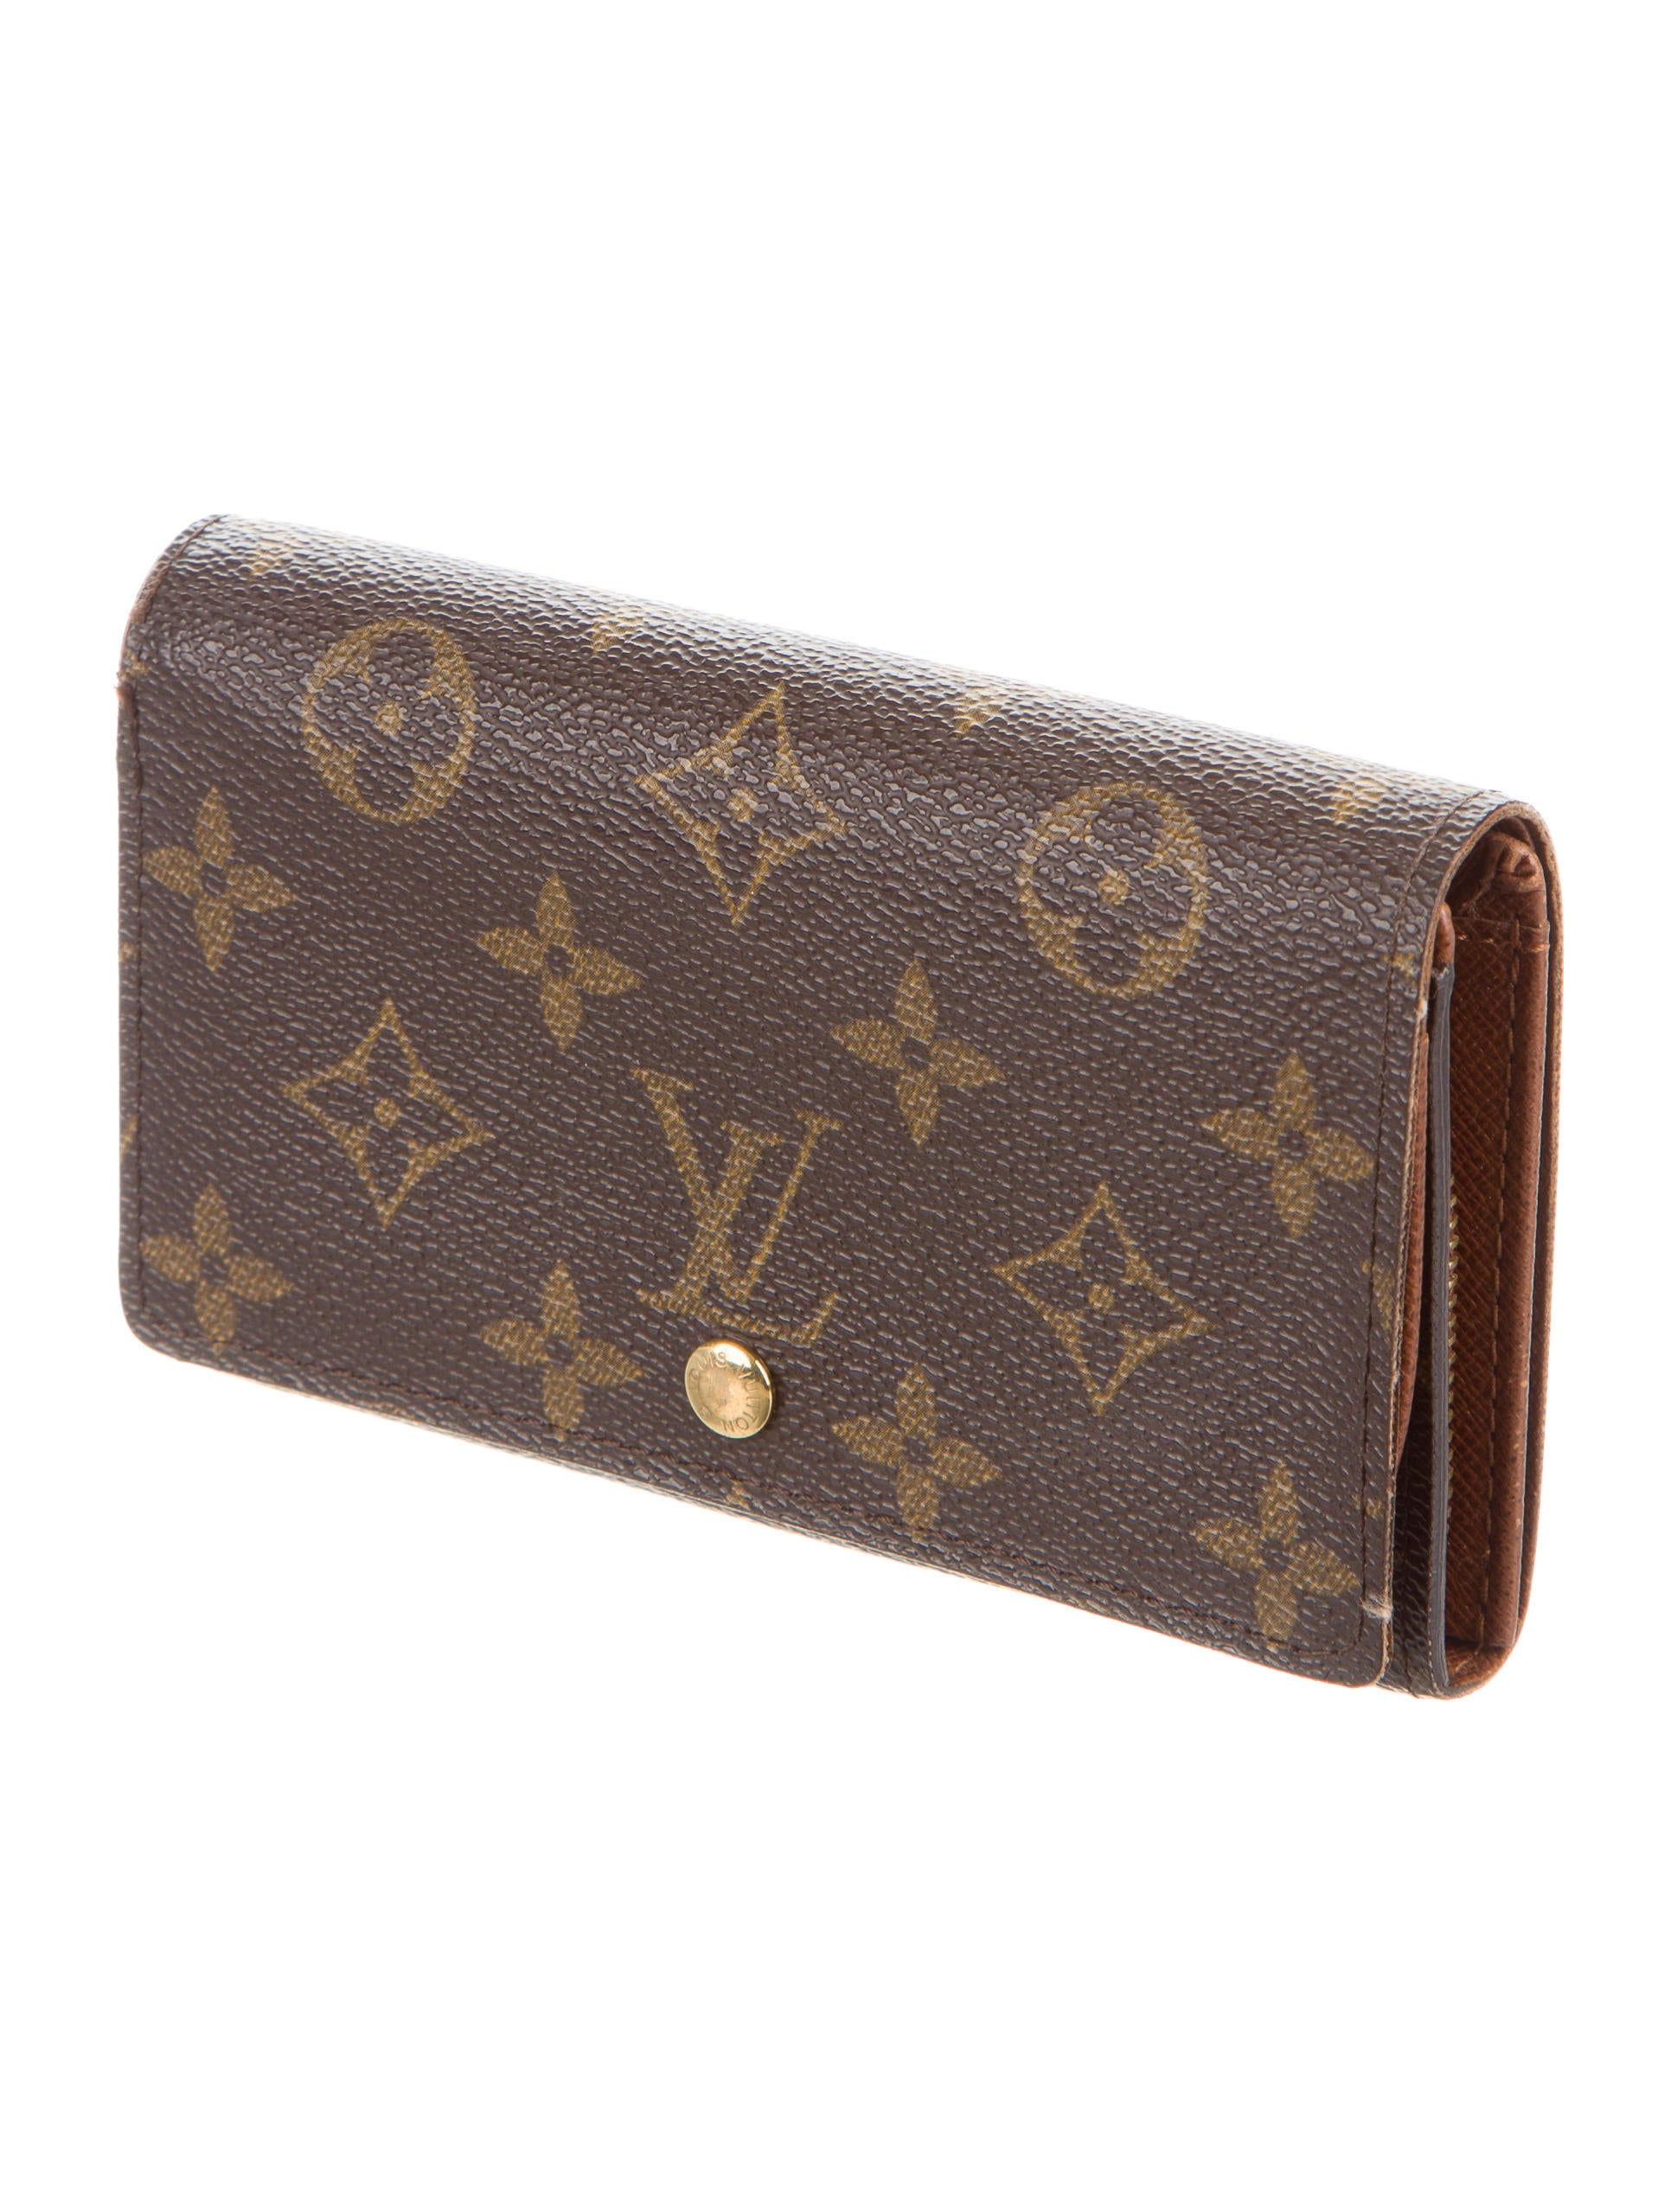 louis vuitton monogram porte monnaie billets wallet